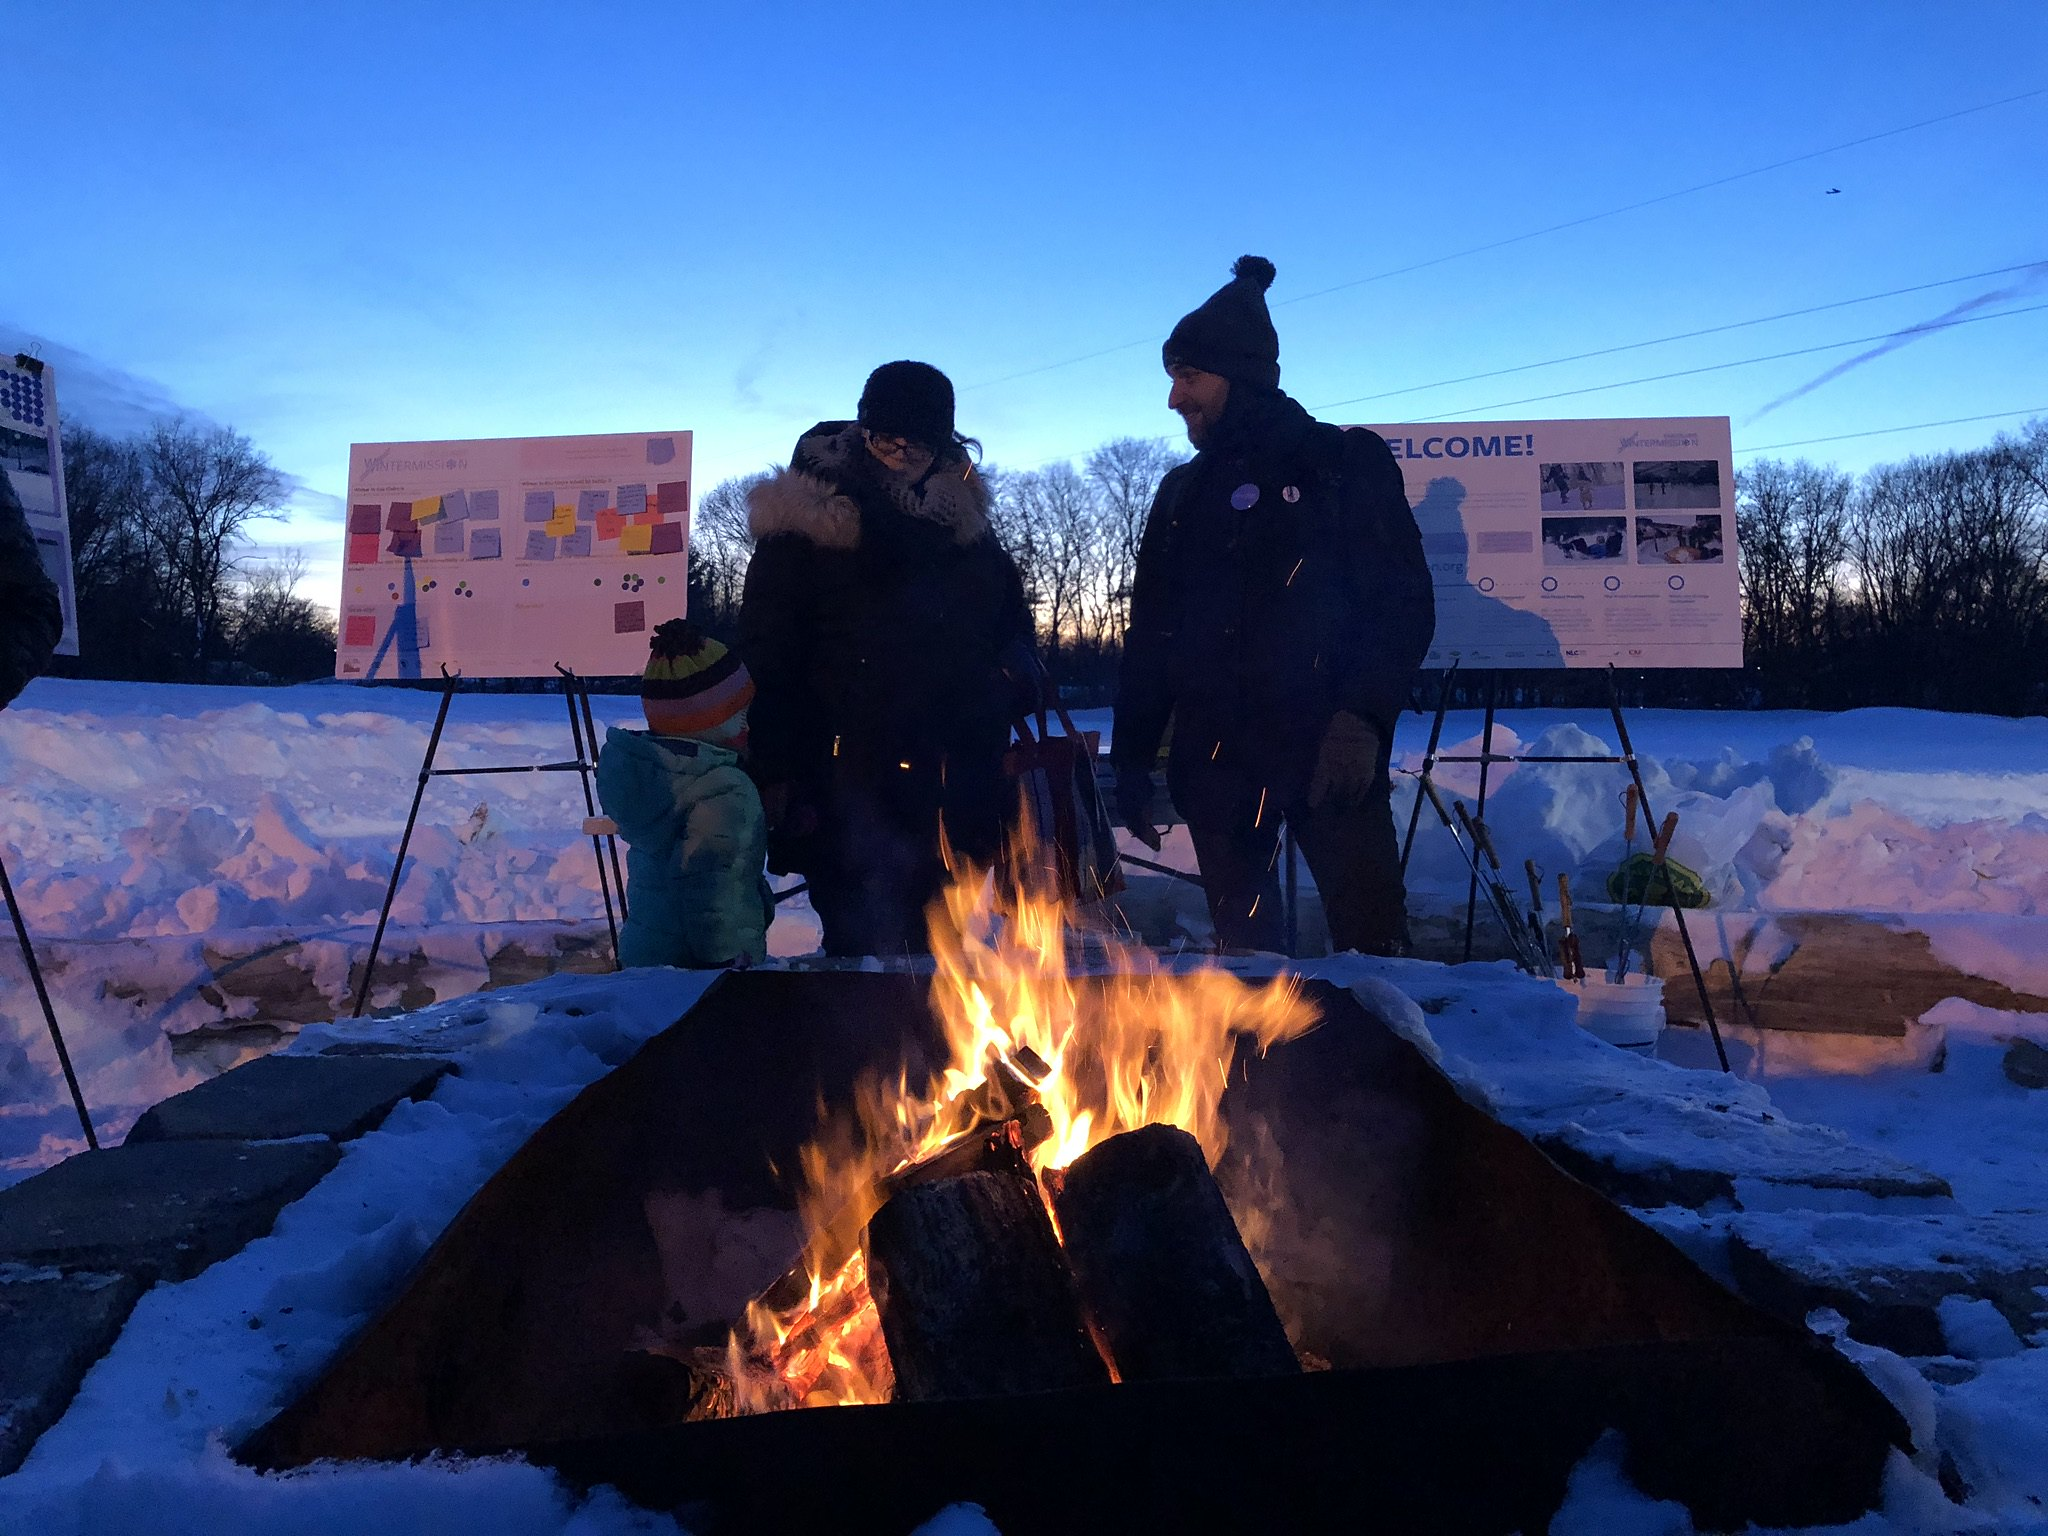 Two adults and a child enjoying an outdoor fire in a snowy location